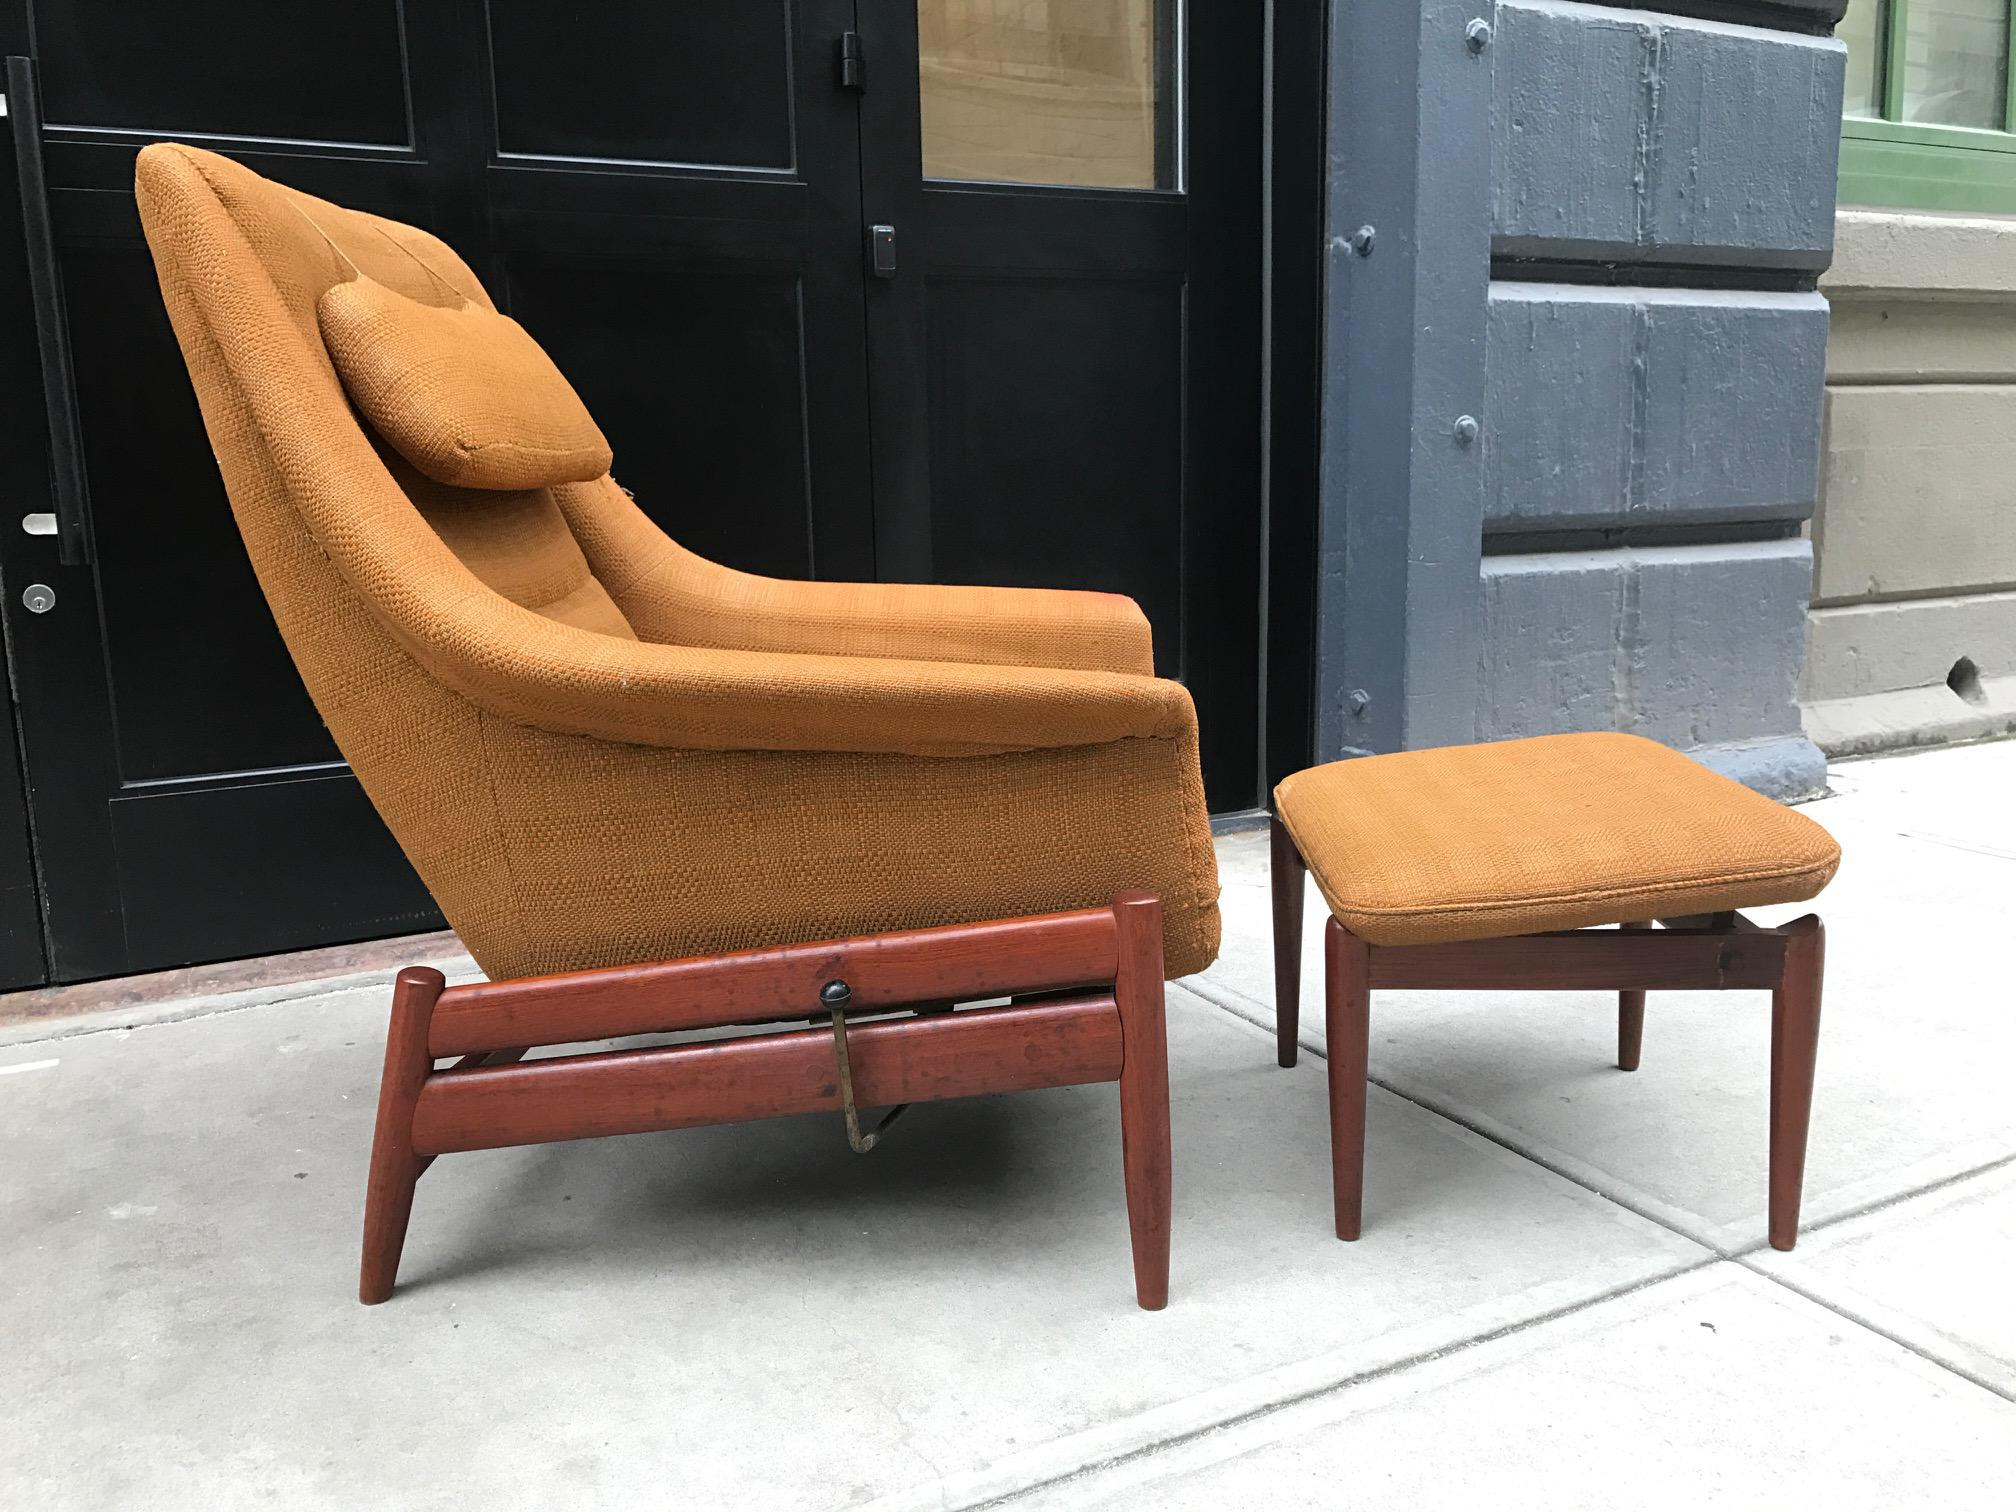 Charmant Povl Dinesen Danish Modern Lounge Chair And Ottoman. The Lounge Chair Rocks  Slightly And The